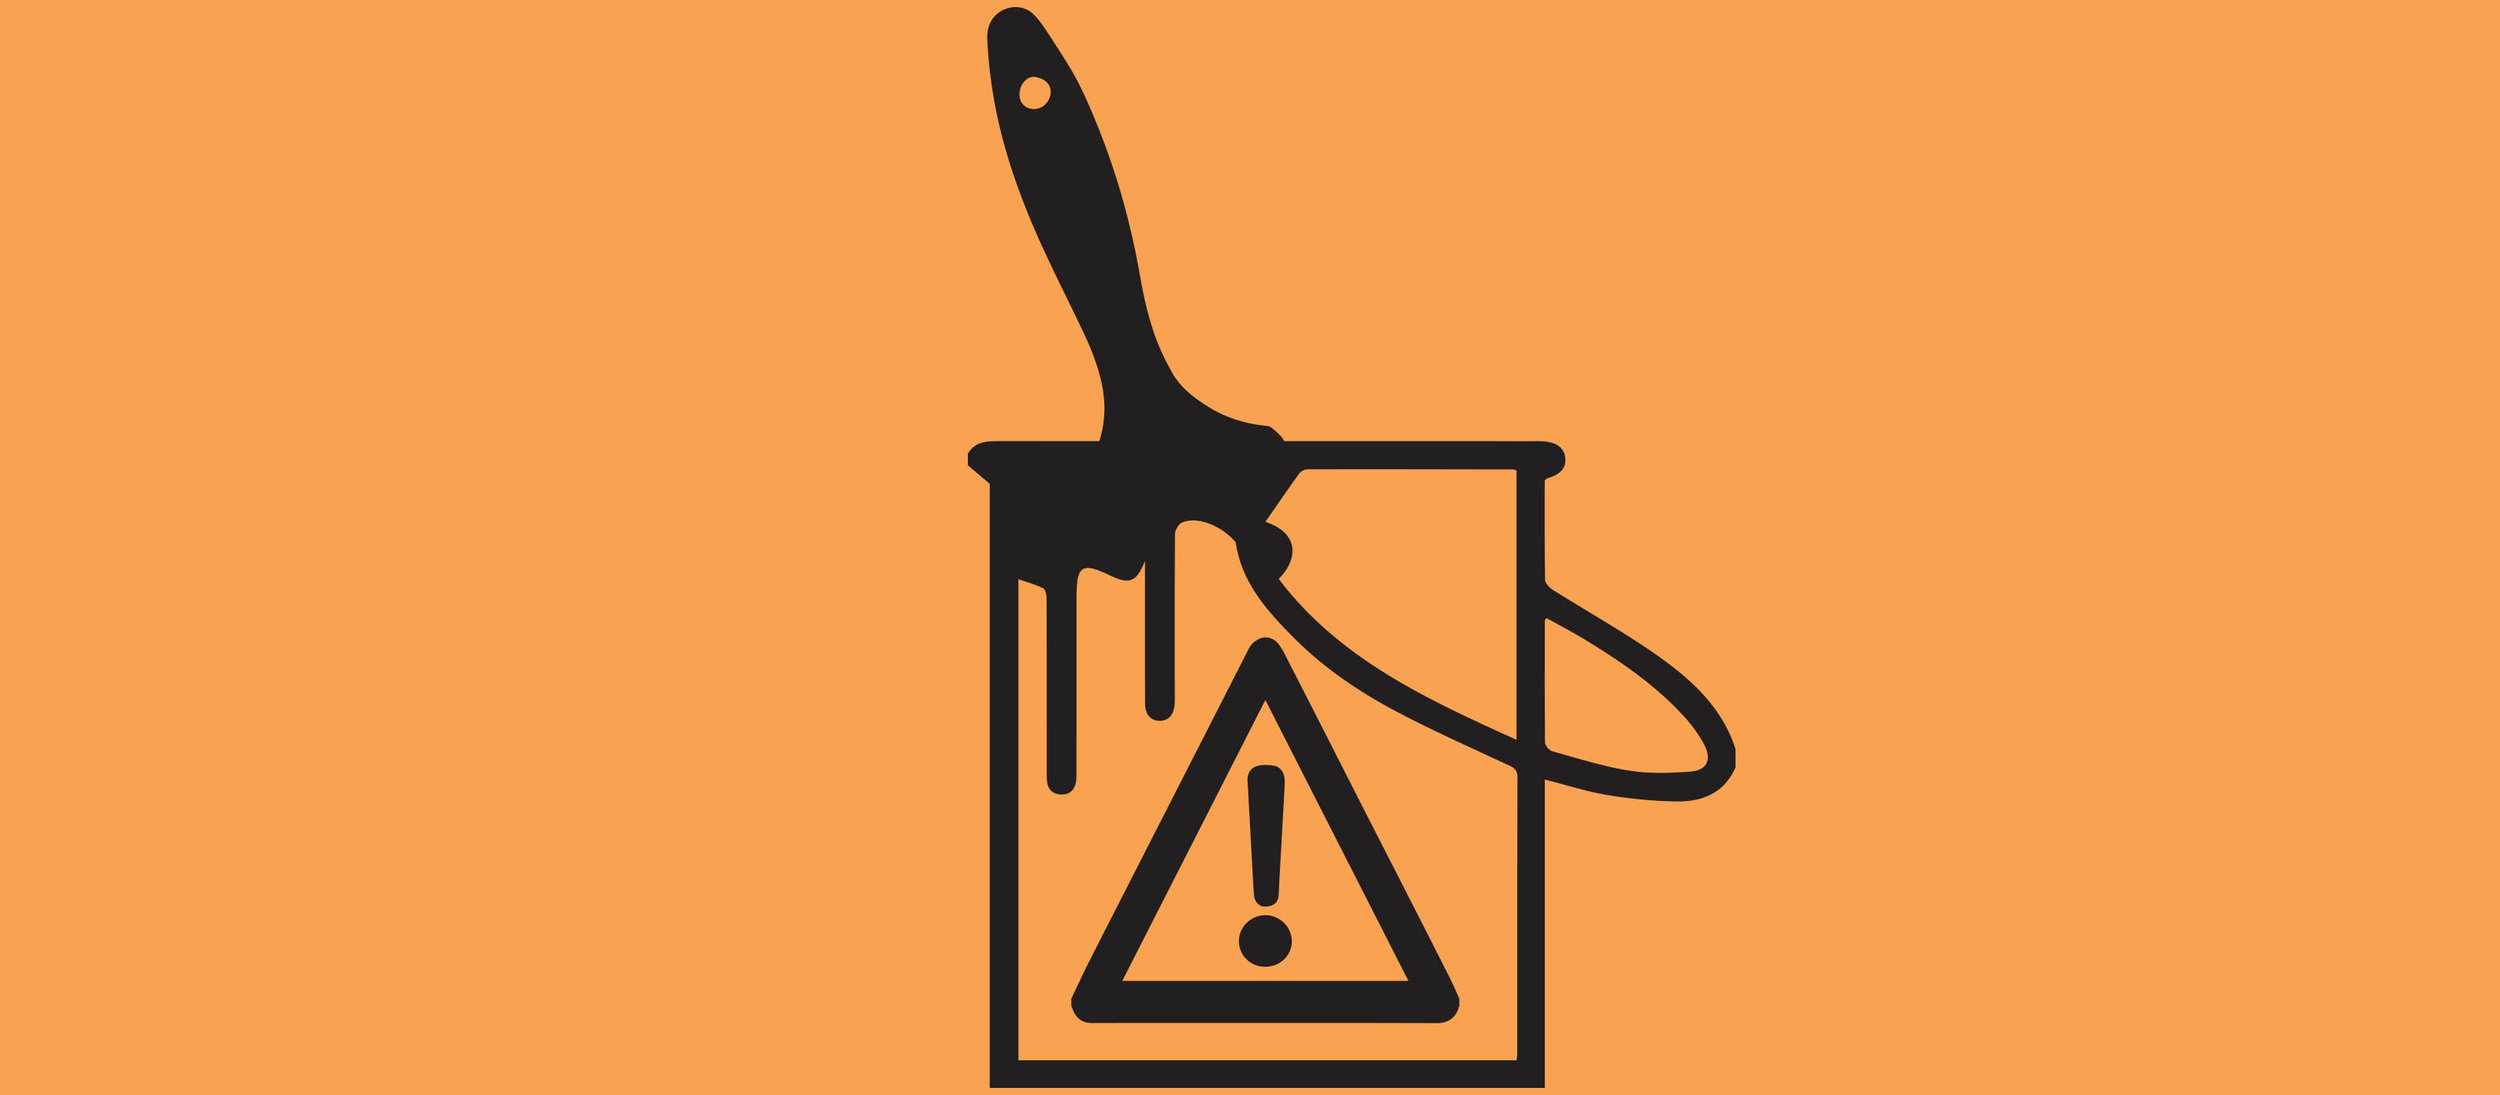 Find out more about lead product removal here. -